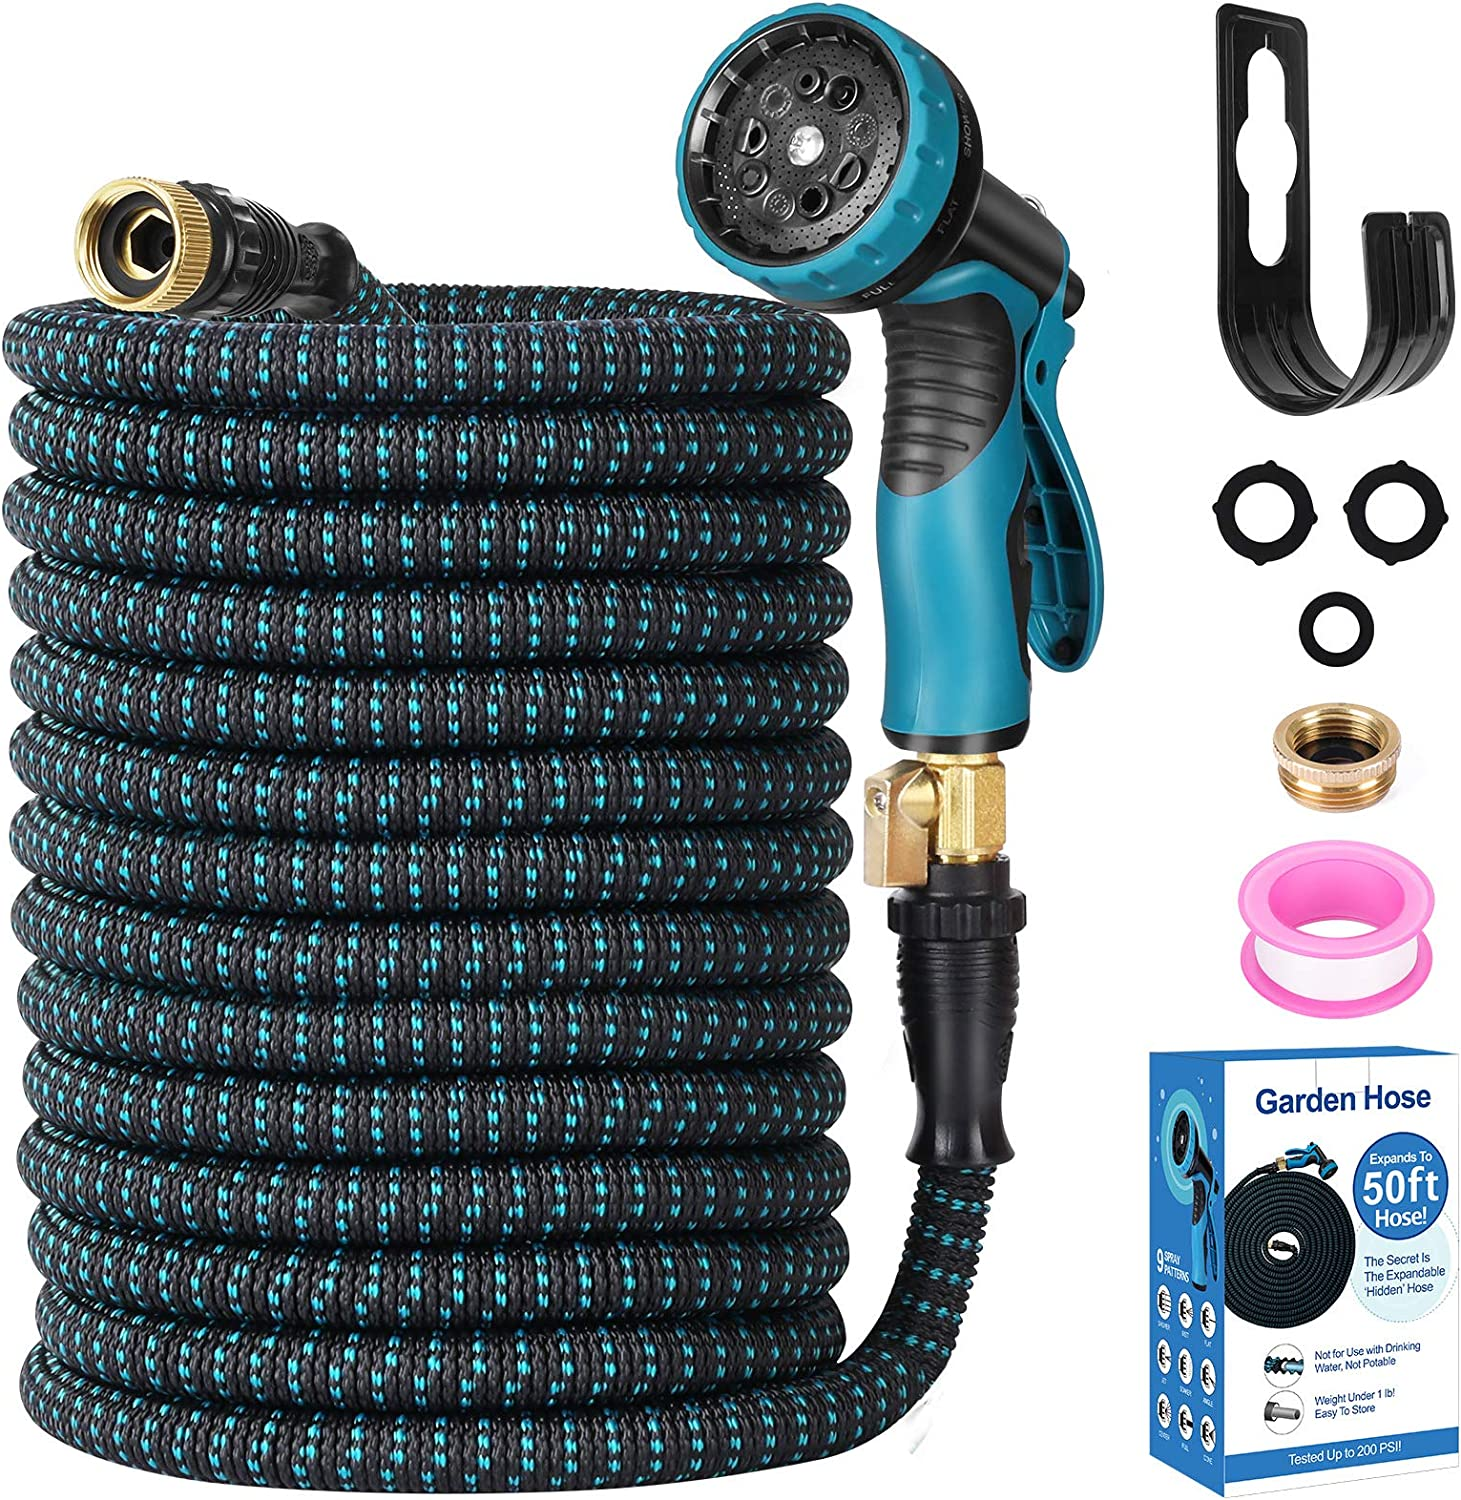 Expendable Garden Hose, Homga 50FT Garden Water Hose with 9 Function Nozzle and 3-Layers Latex, Heavy Duty Kink Free Water Hose with 3/4